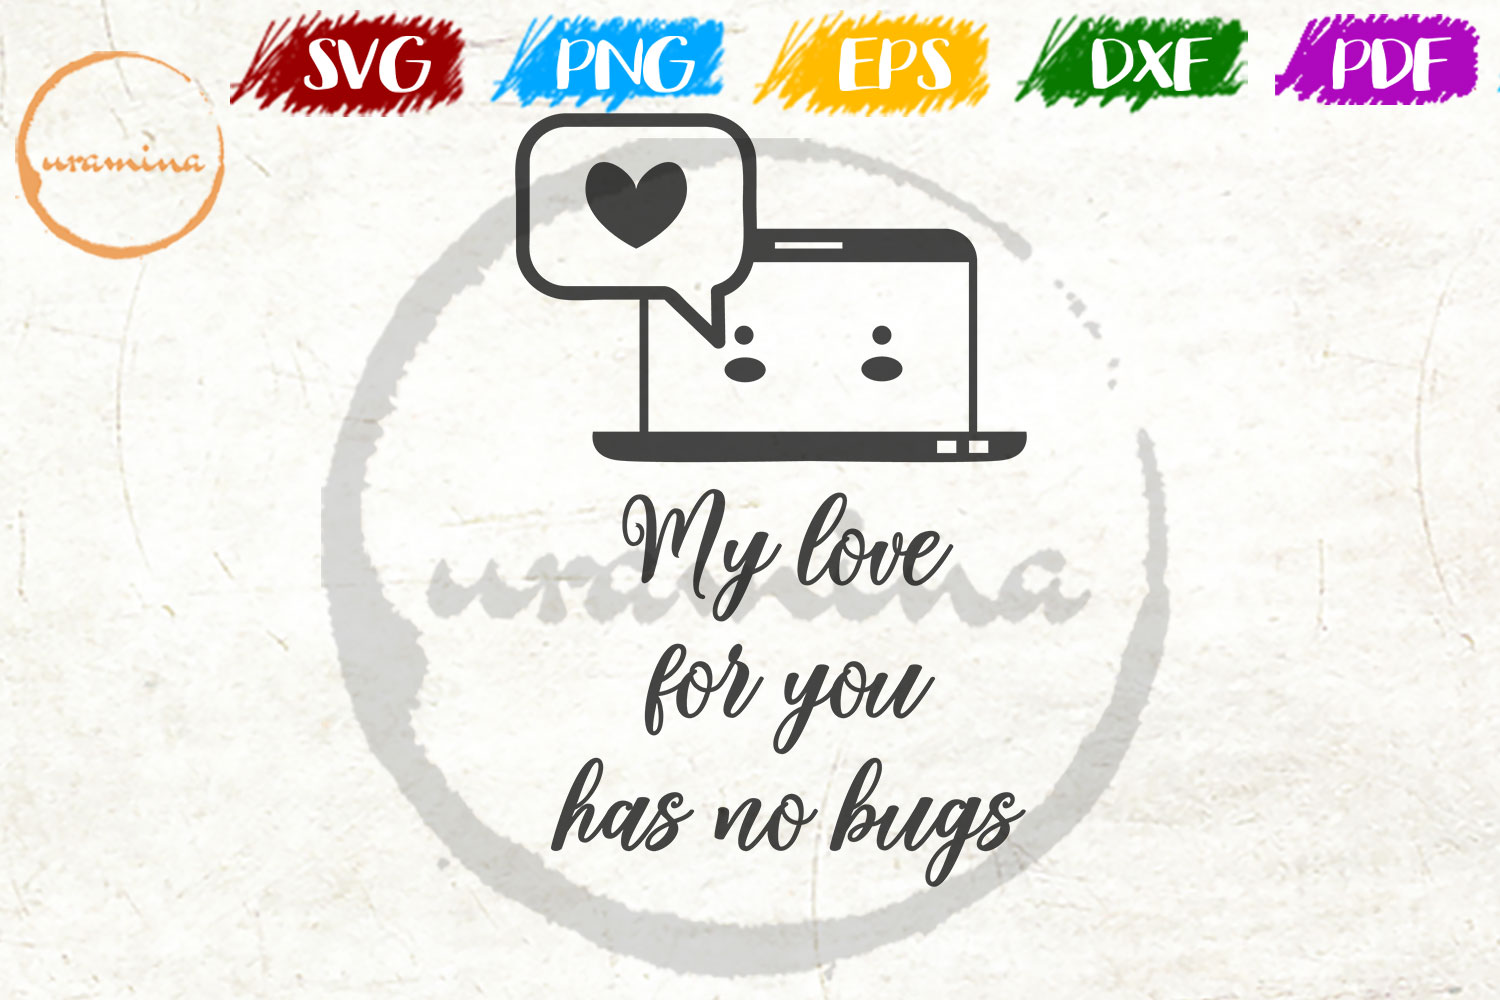 Download Free My Love For You Has No Bugs Graphic By Uramina Creative Fabrica for Cricut Explore, Silhouette and other cutting machines.